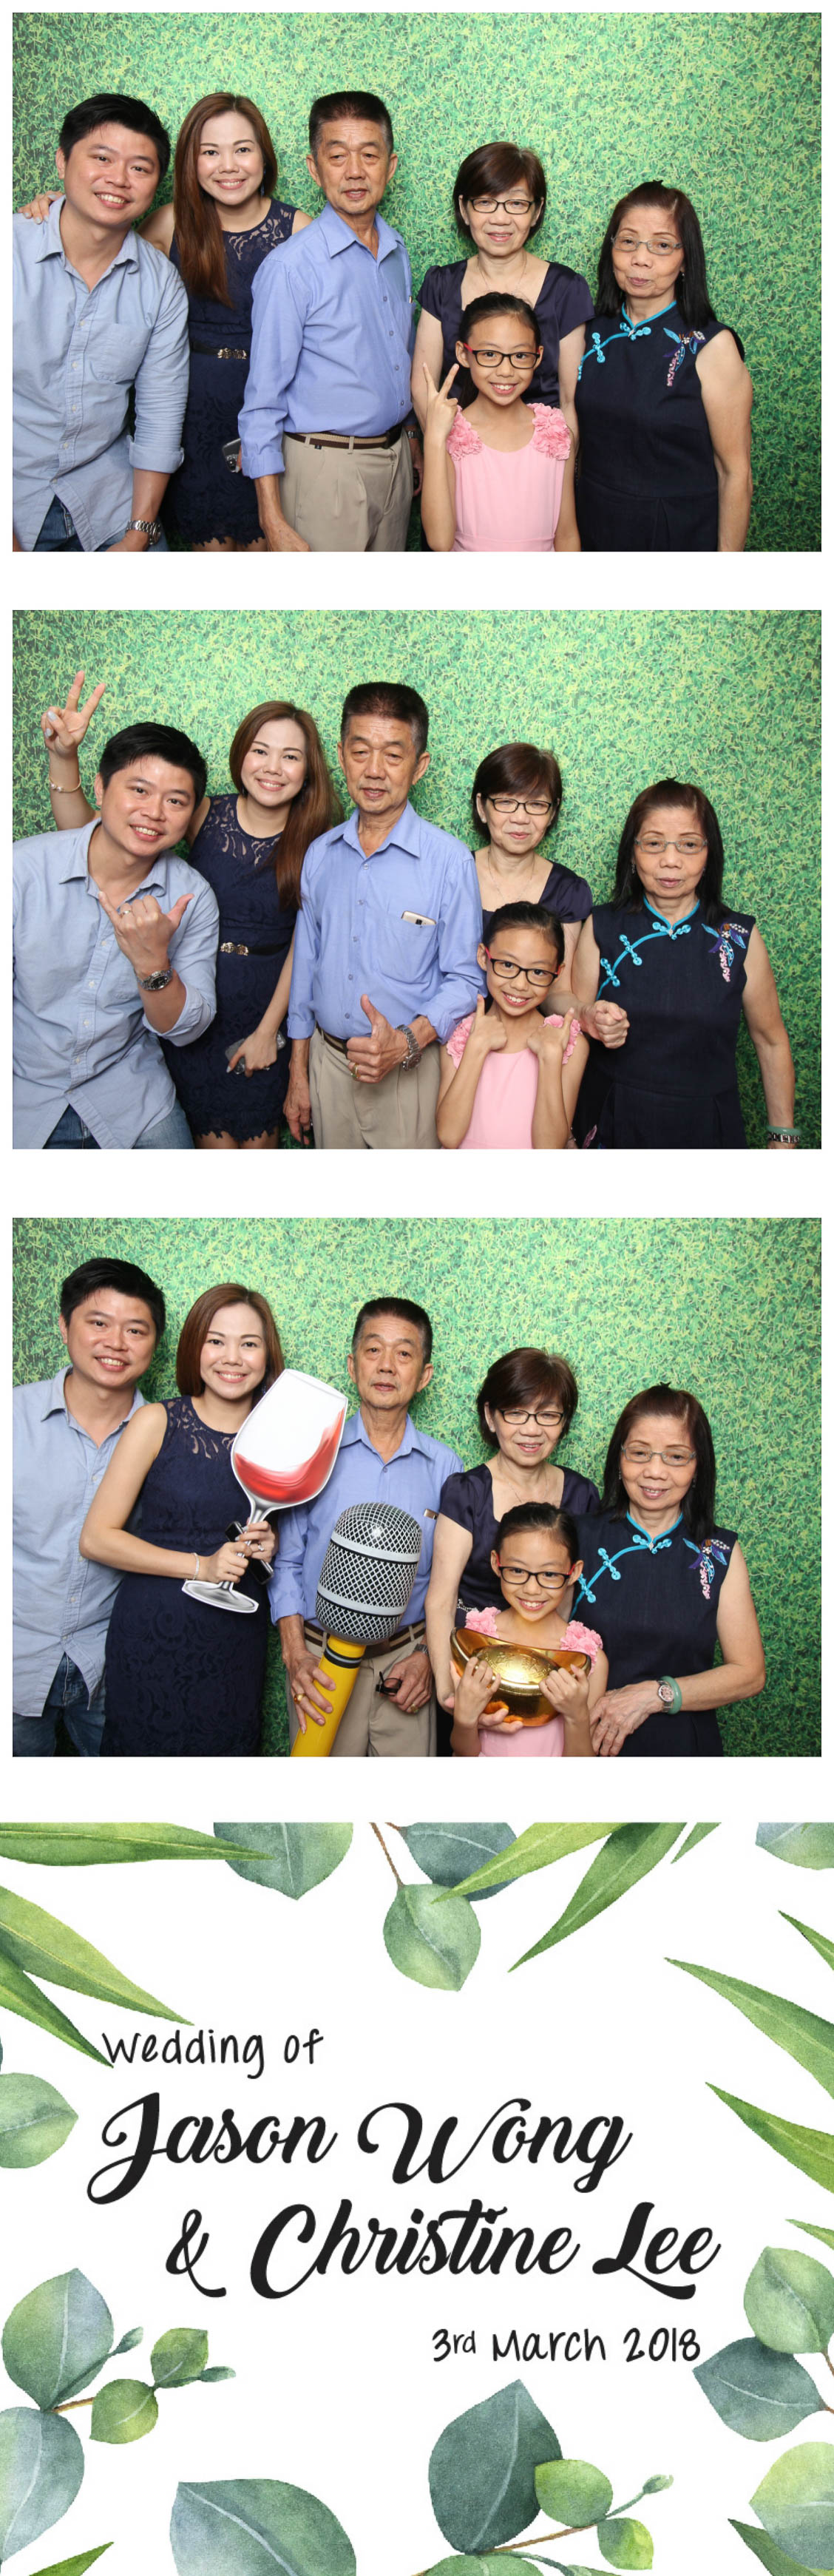 Photobooth 0302-41